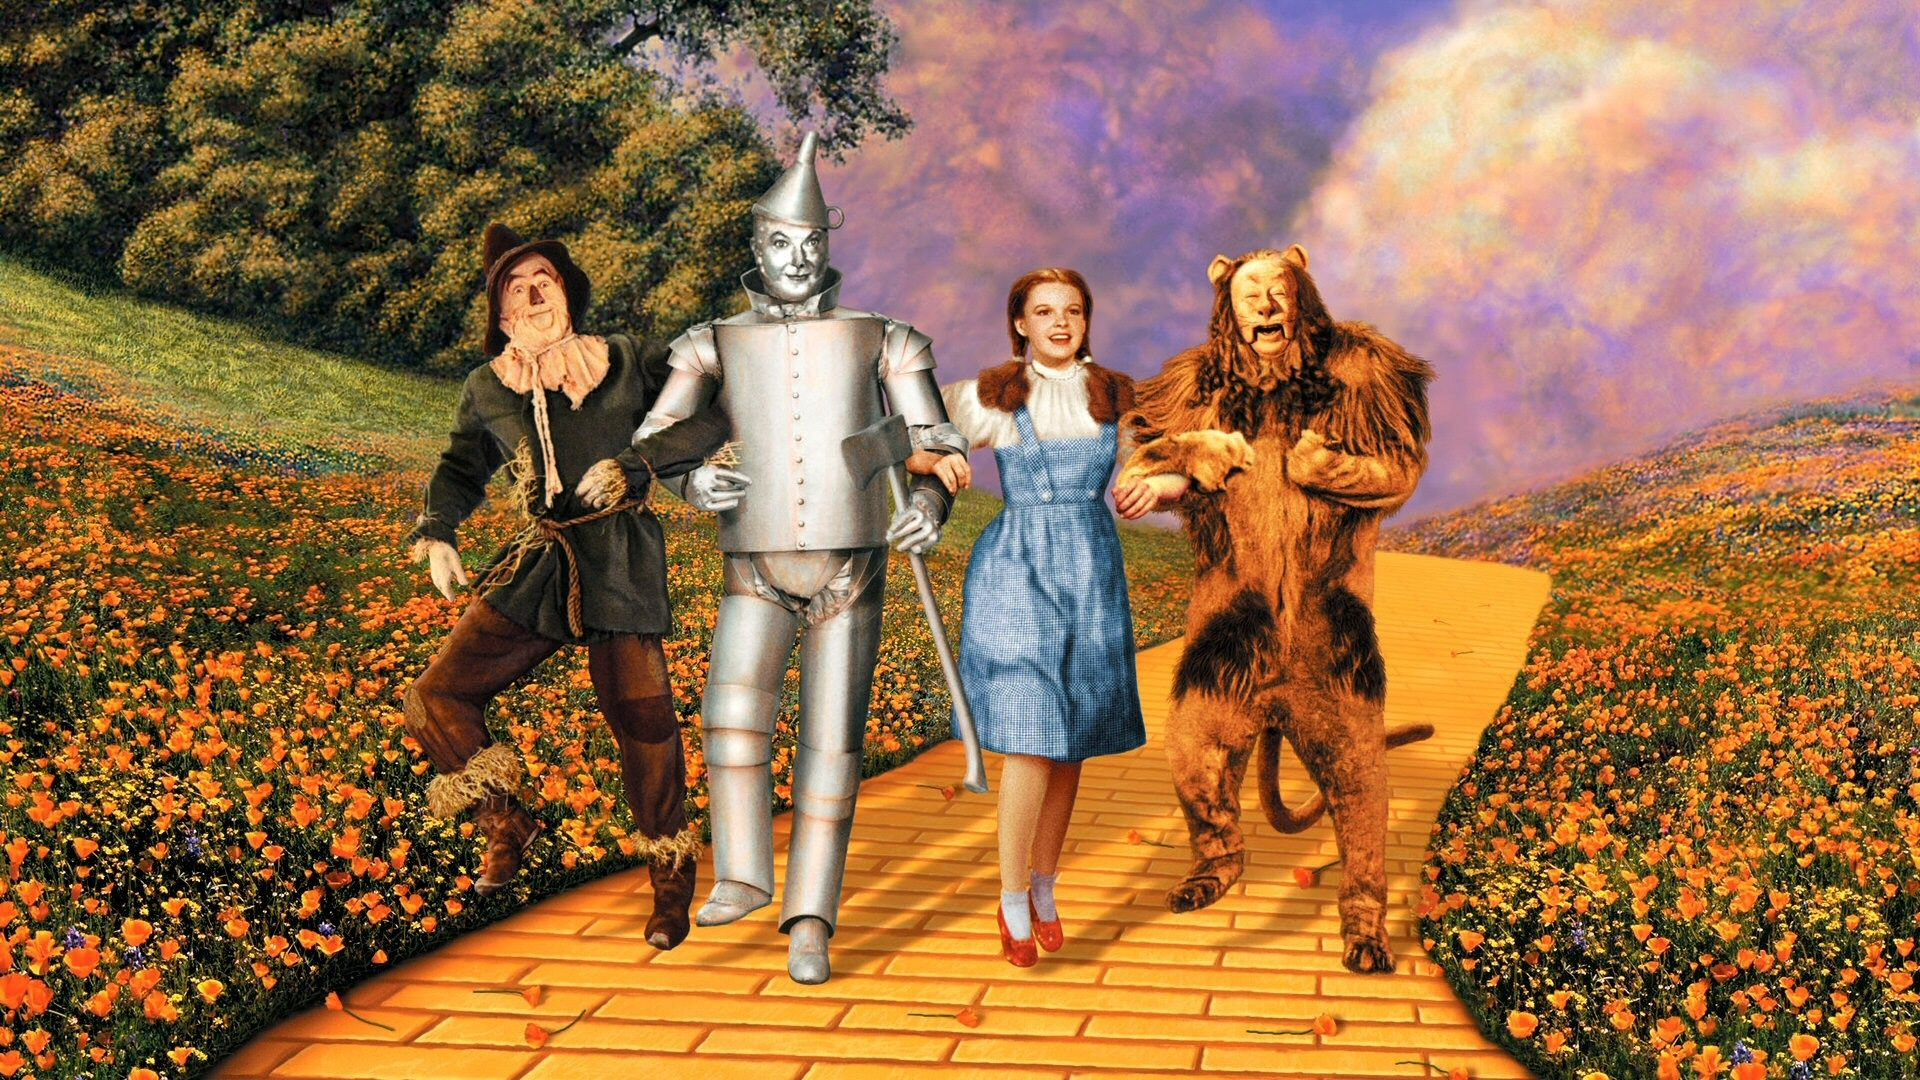 pics Wizard Of Oz Wallpaper wizard of oz wallpapers top free